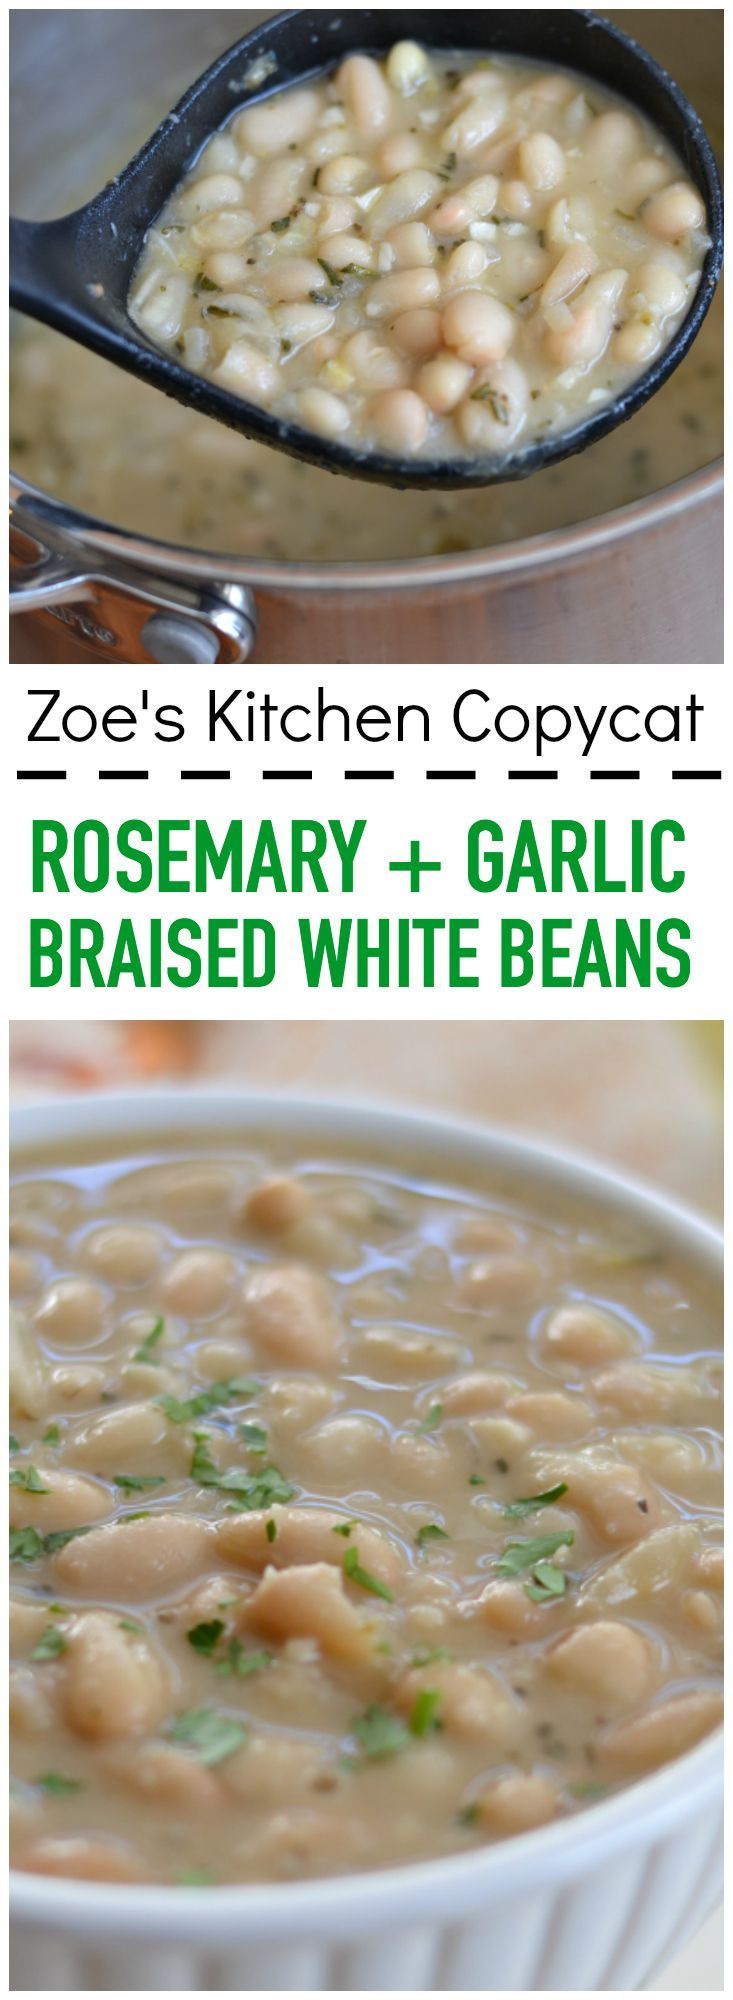 This Recipe For Rosemary And Garlic Braised White Beans Is